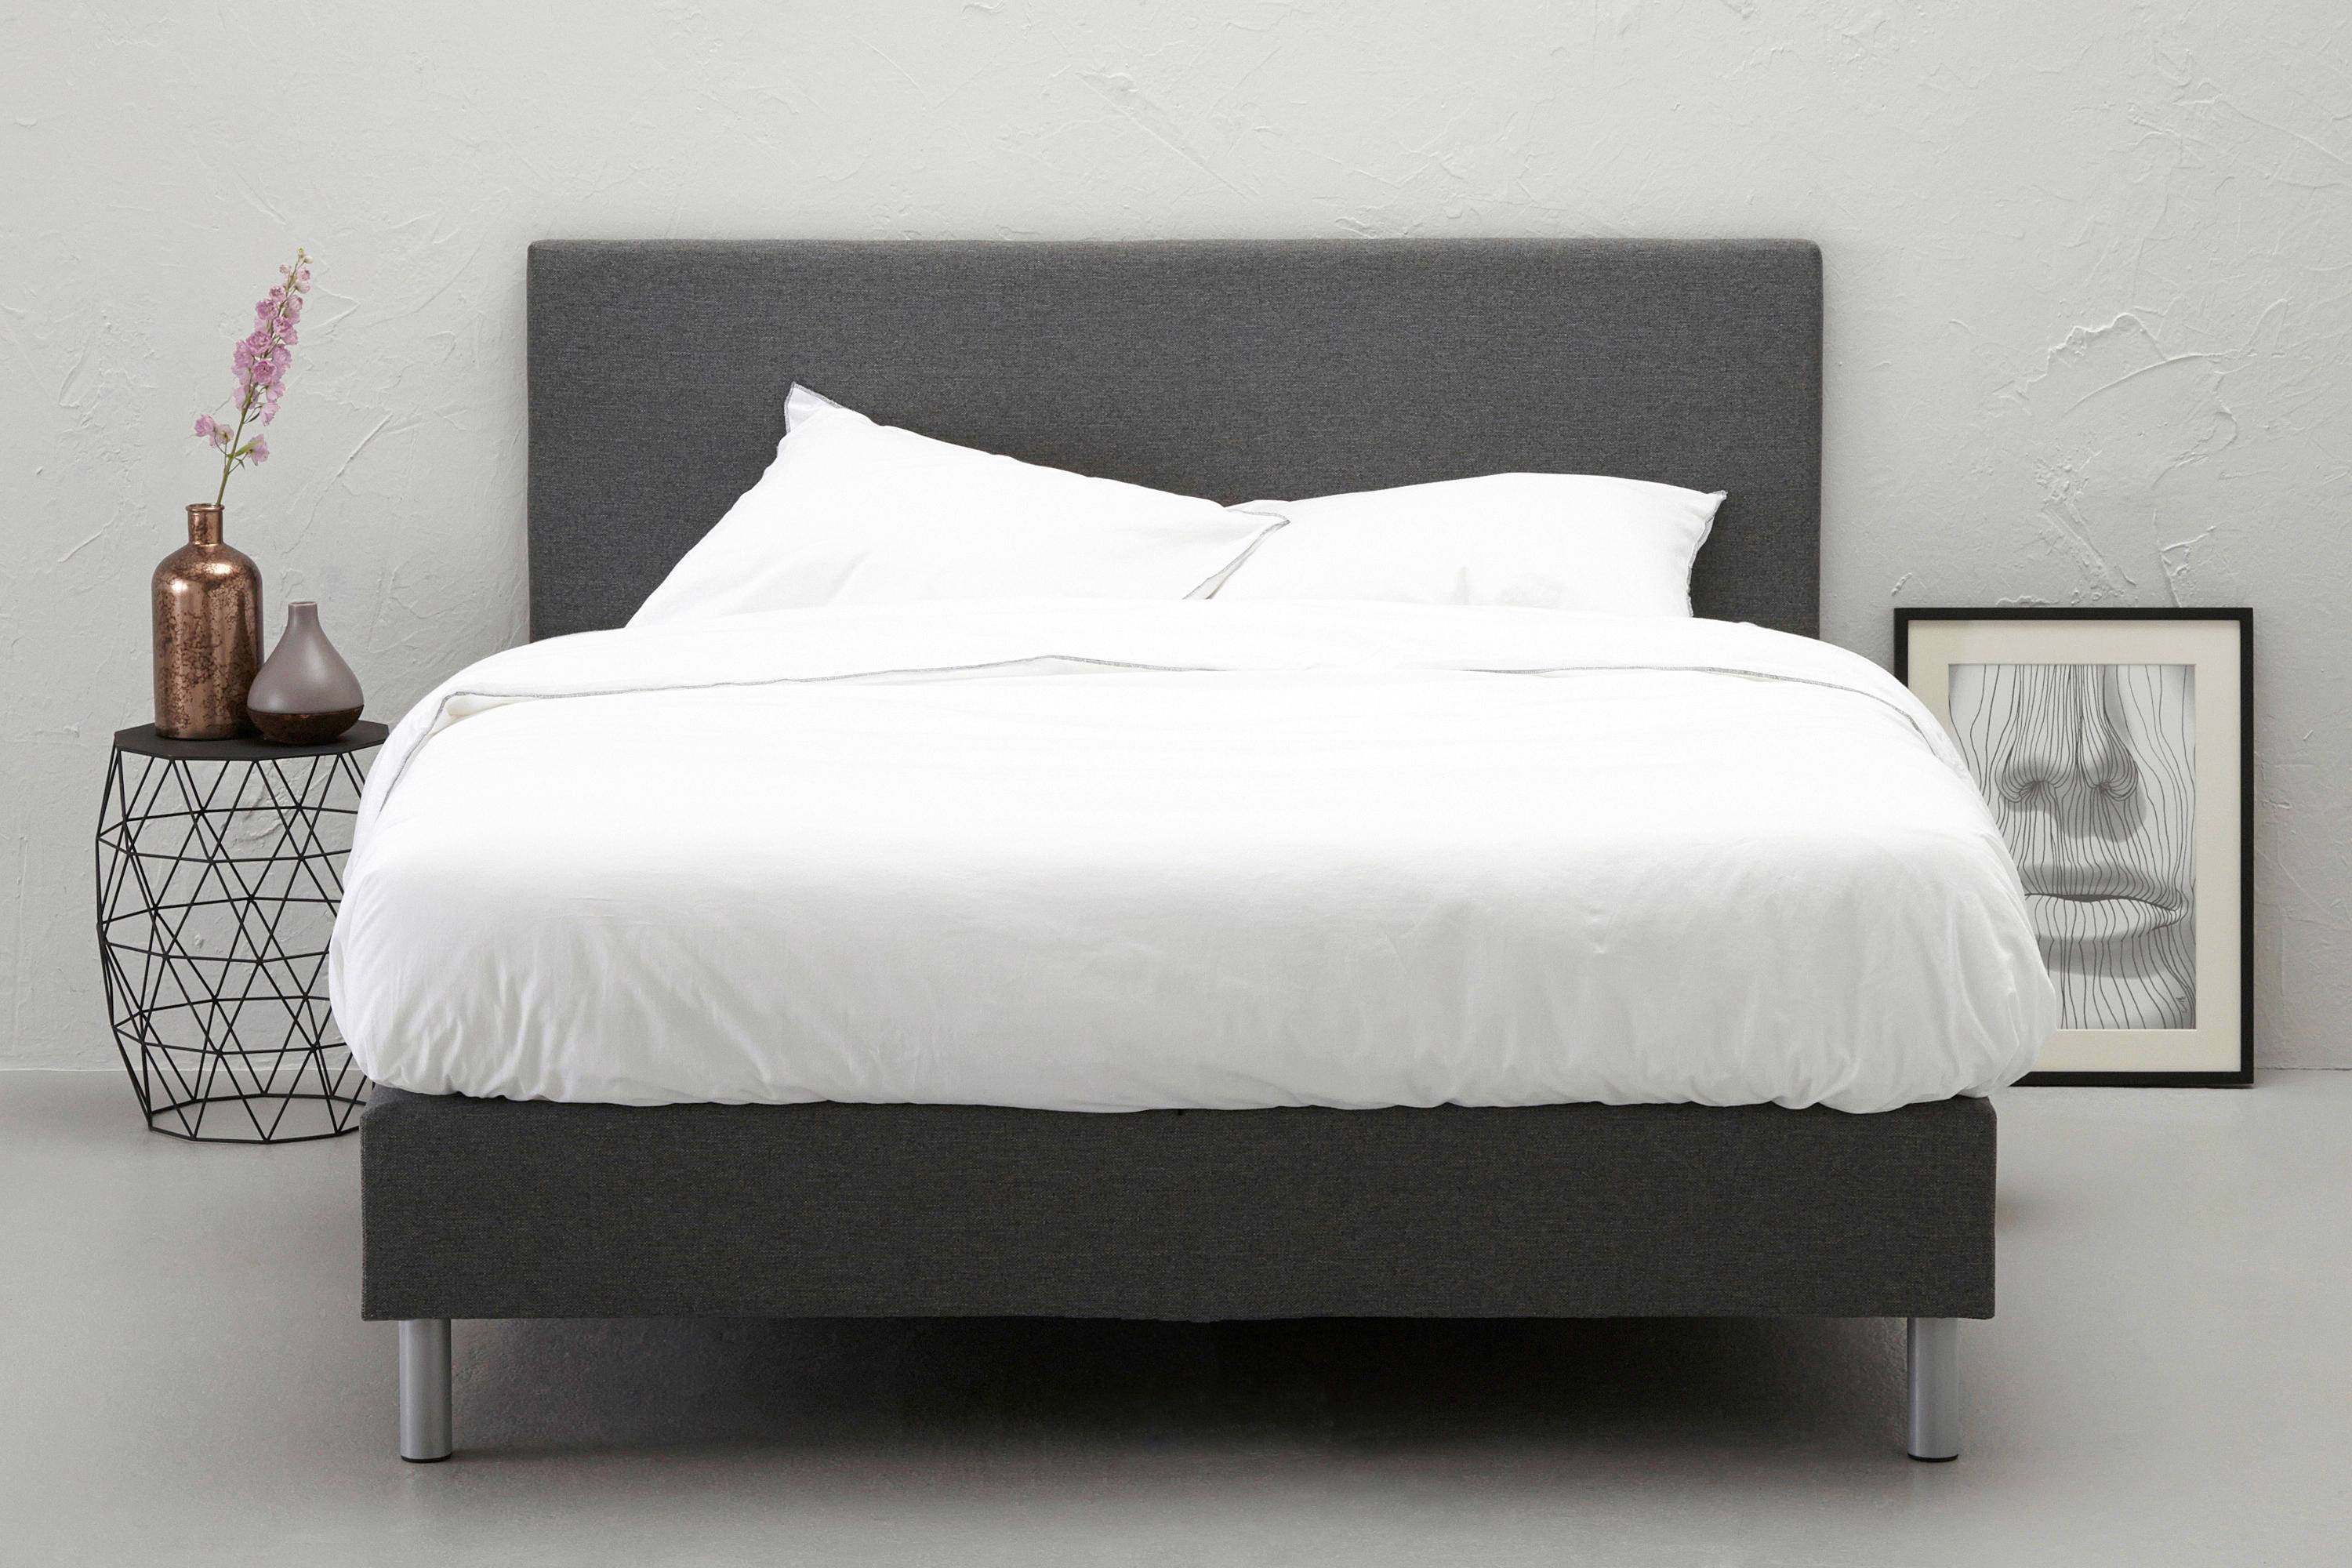 whkmp's own complete boxspring Vallentuna